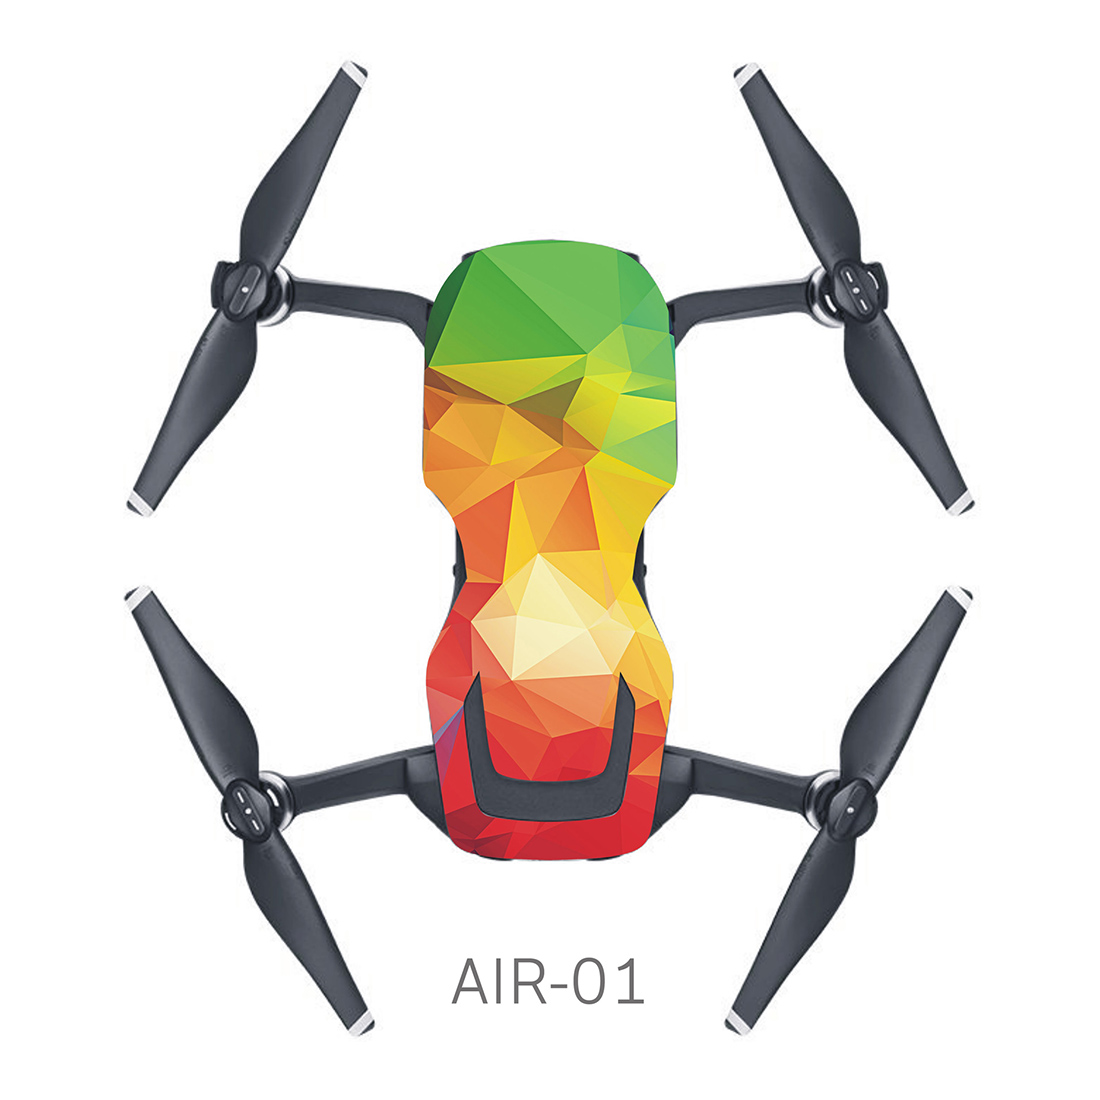 hobbyinrc-stickers-recycle-pvc-lightweight-sticker-decal-skin-cover-for-dji-font-b-mavic-b-font-air-drone-accessories